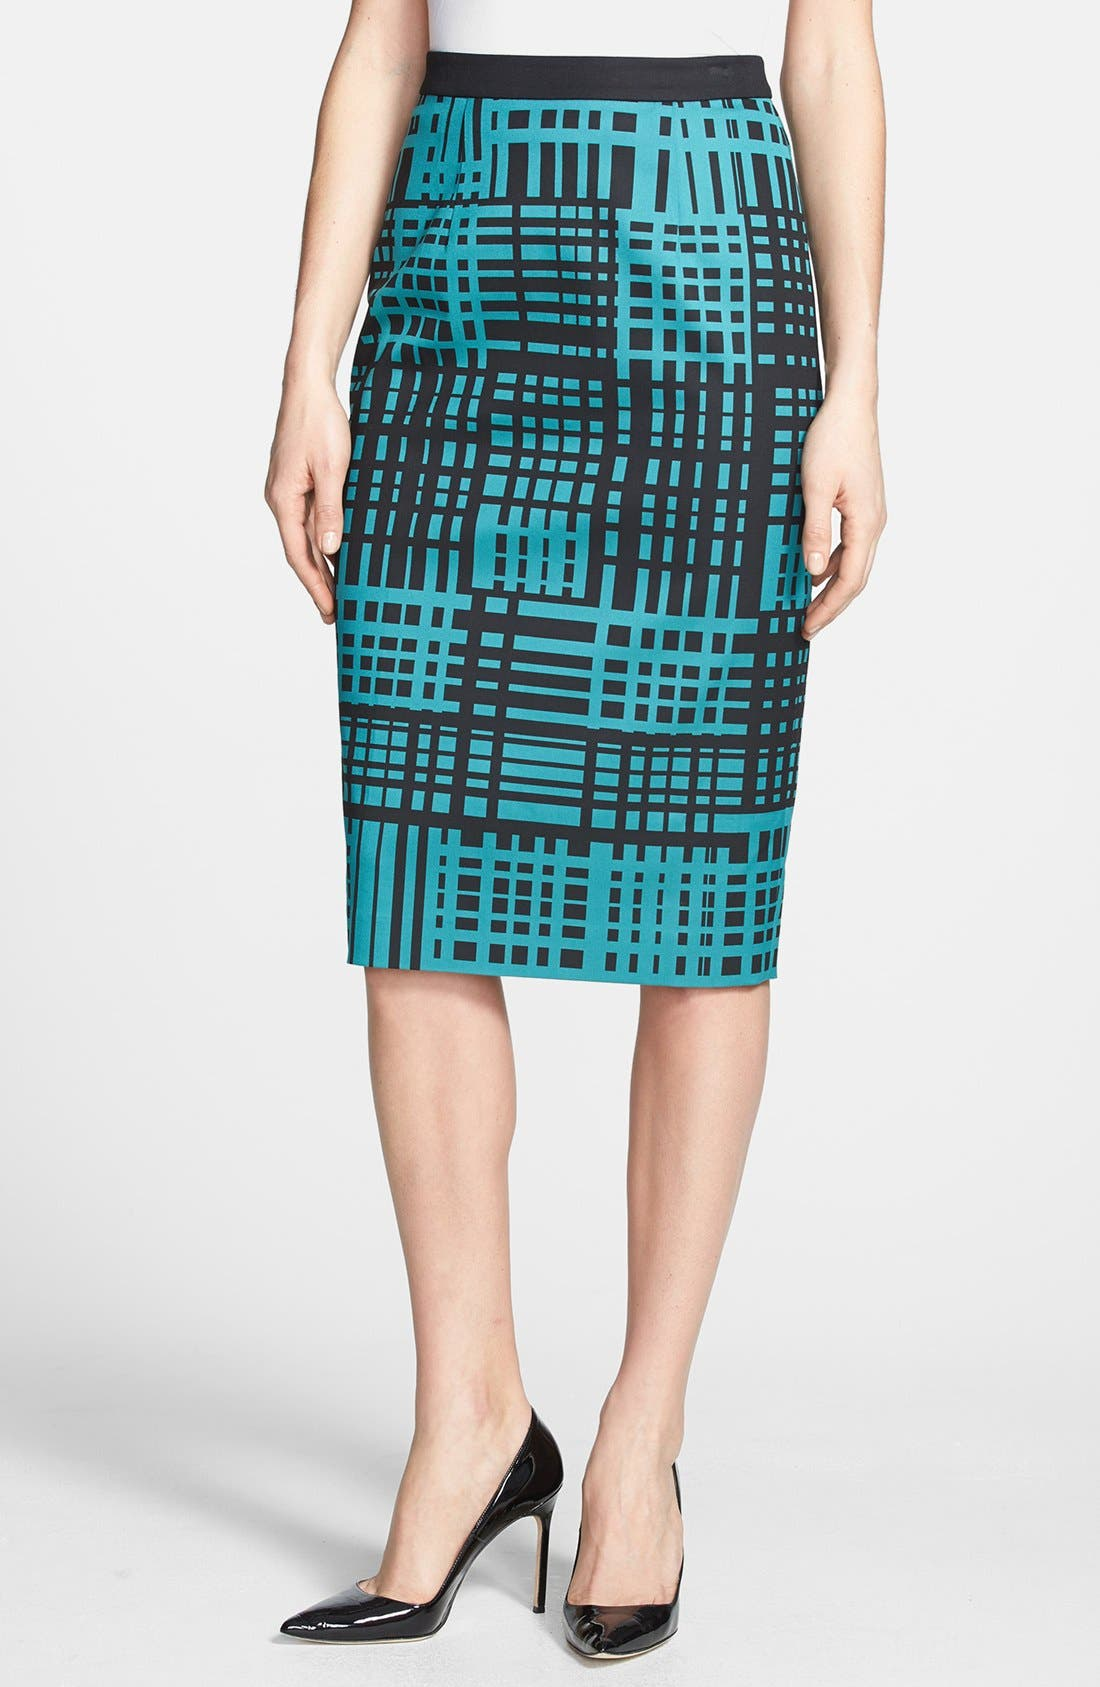 Print Pencil Skirt,                             Main thumbnail 1, color,                             Black/ Teal Bayou Combo